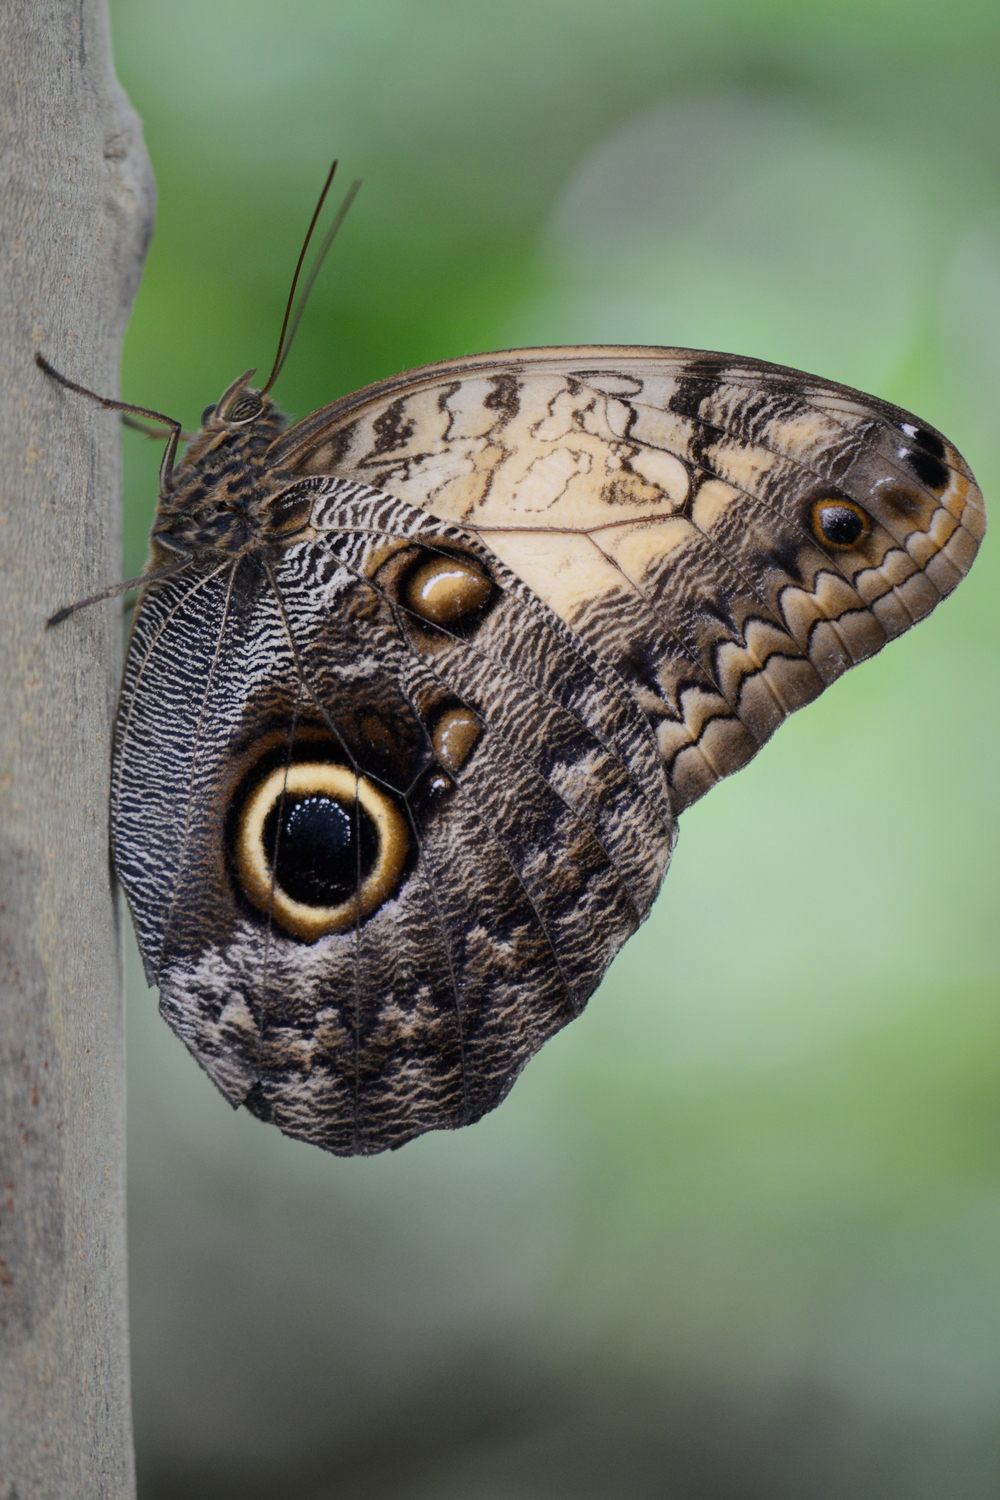 Owl butterflies have eye-like markings on their wings to deter predators.  Our eyebrows may serve a similar function.  Image credit: Böhringer Friedrich